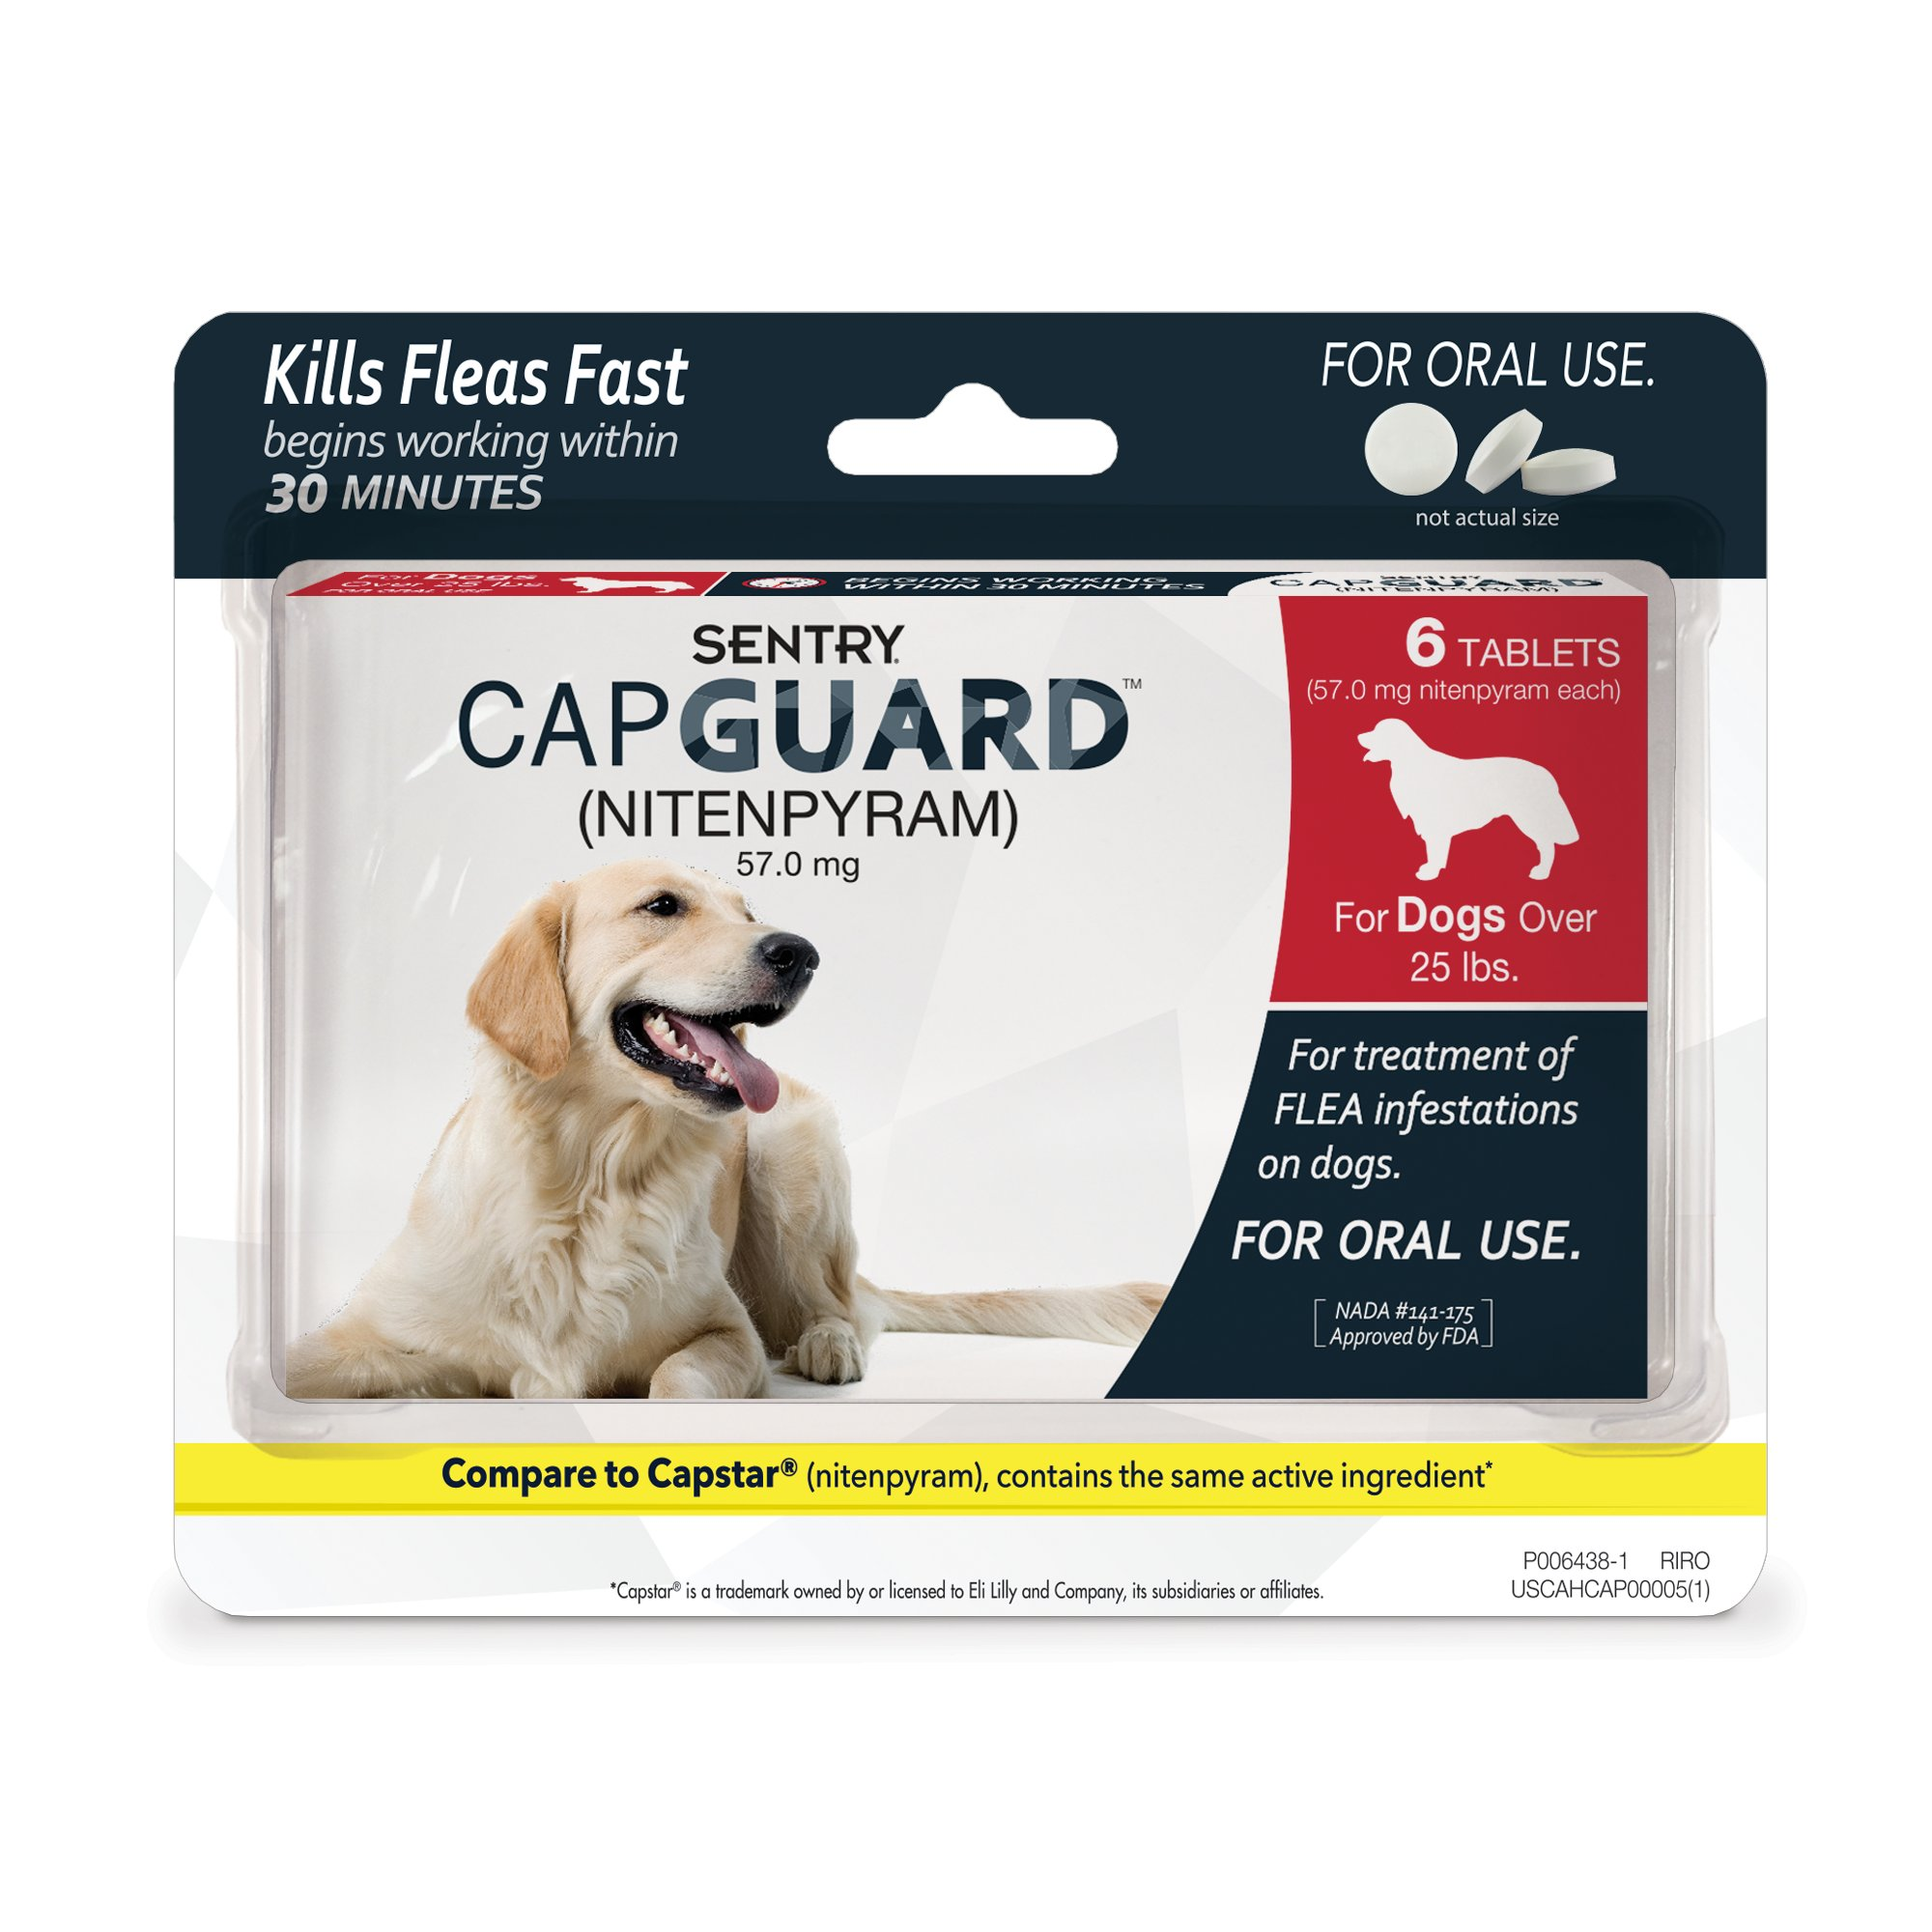 Capstar Flea Pill For Cats Side Effects